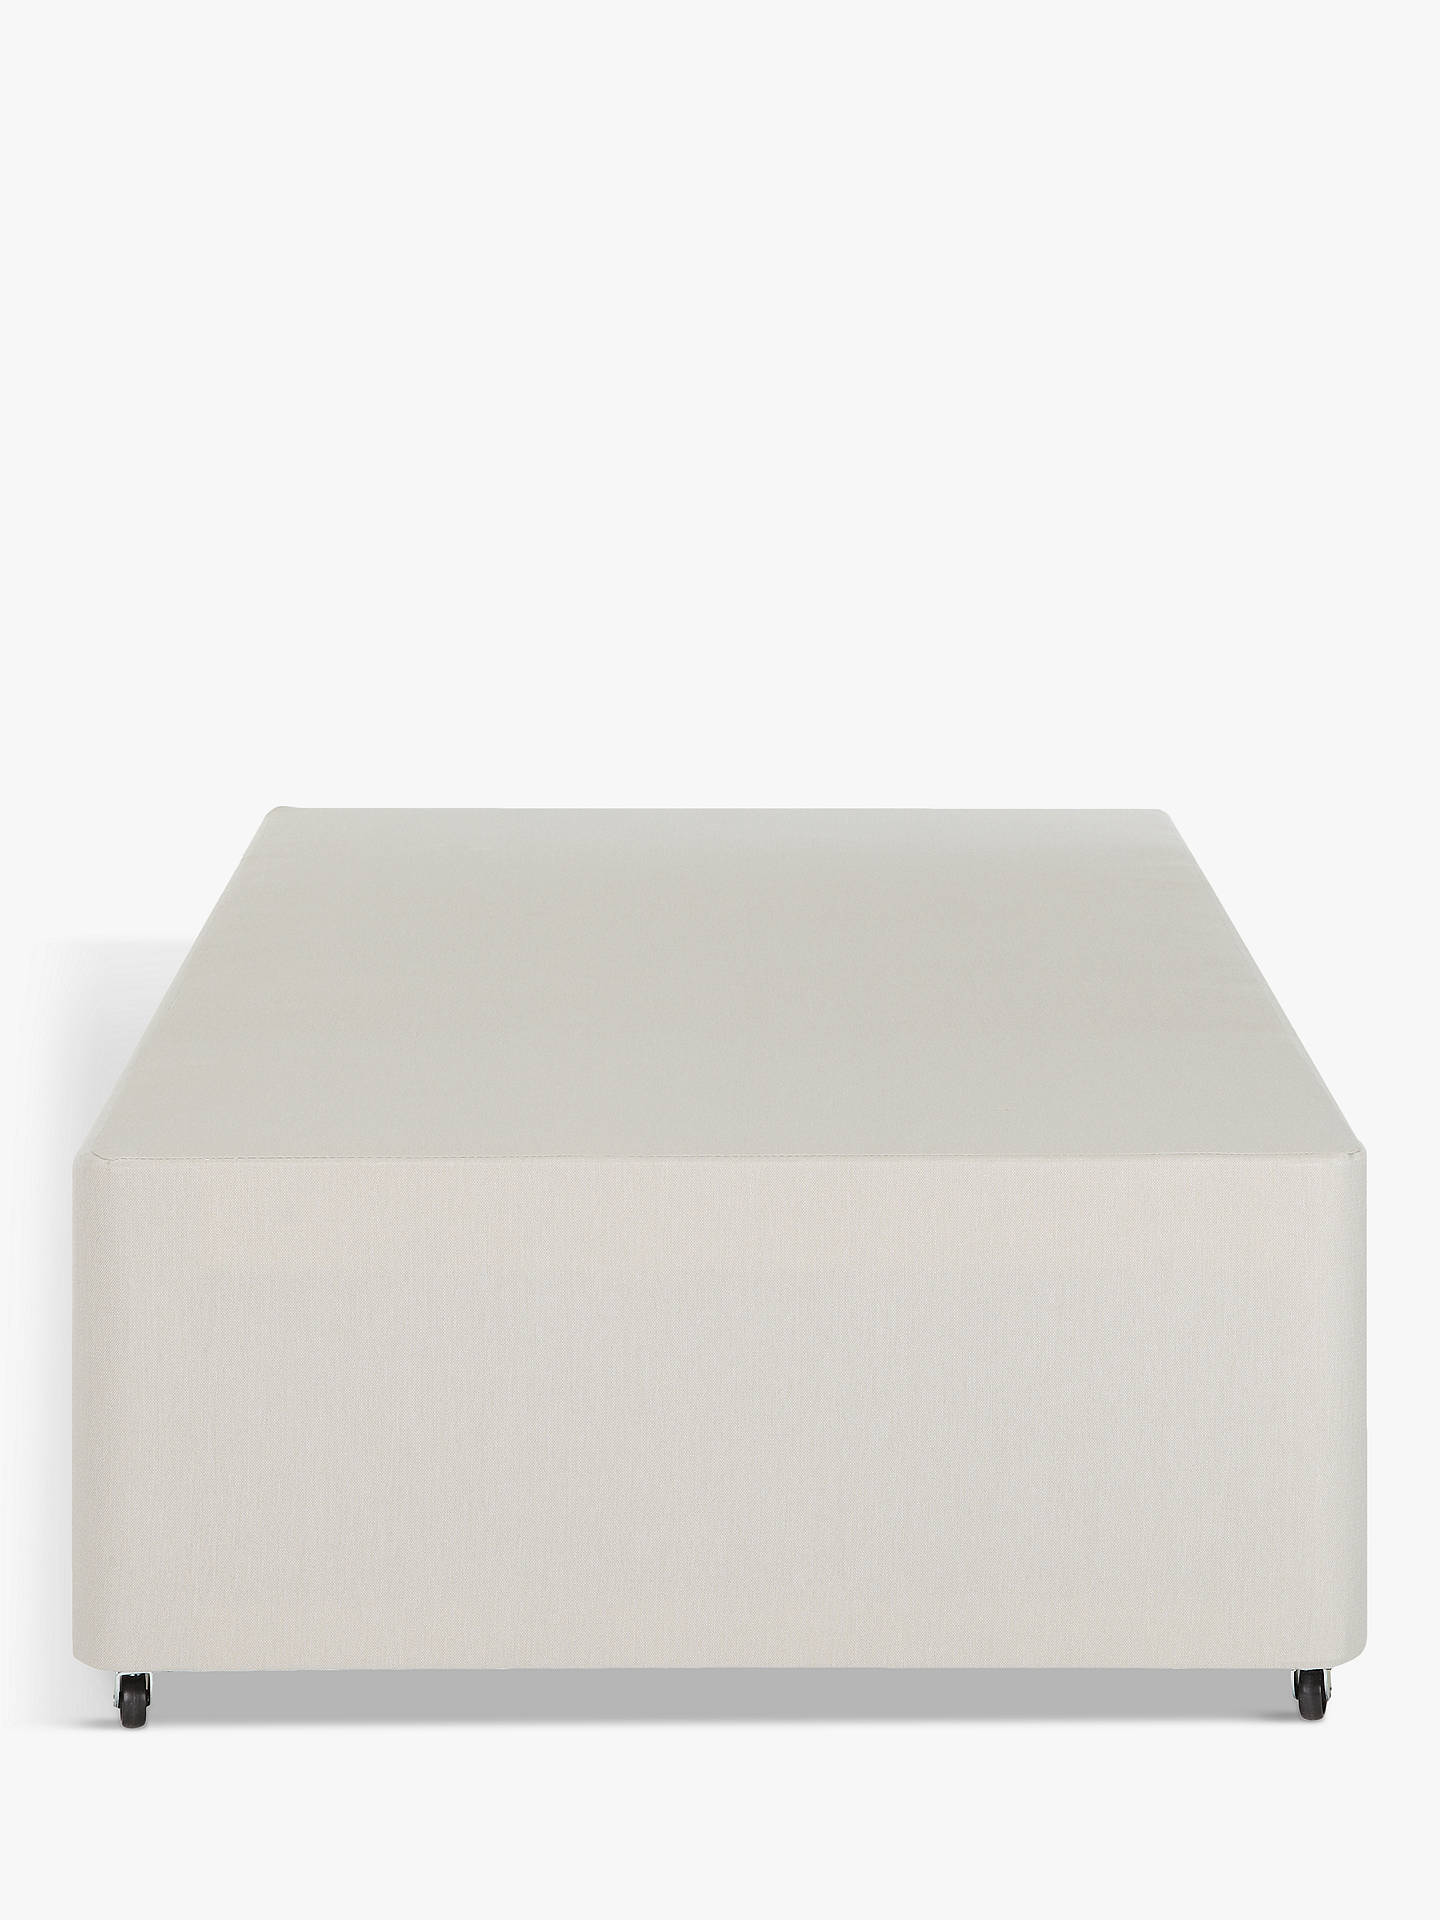 Buy John Lewis & Partners Non-Sprung Two Drawer Divan Storage Bed, Light Grey, Small Single Online at johnlewis.com